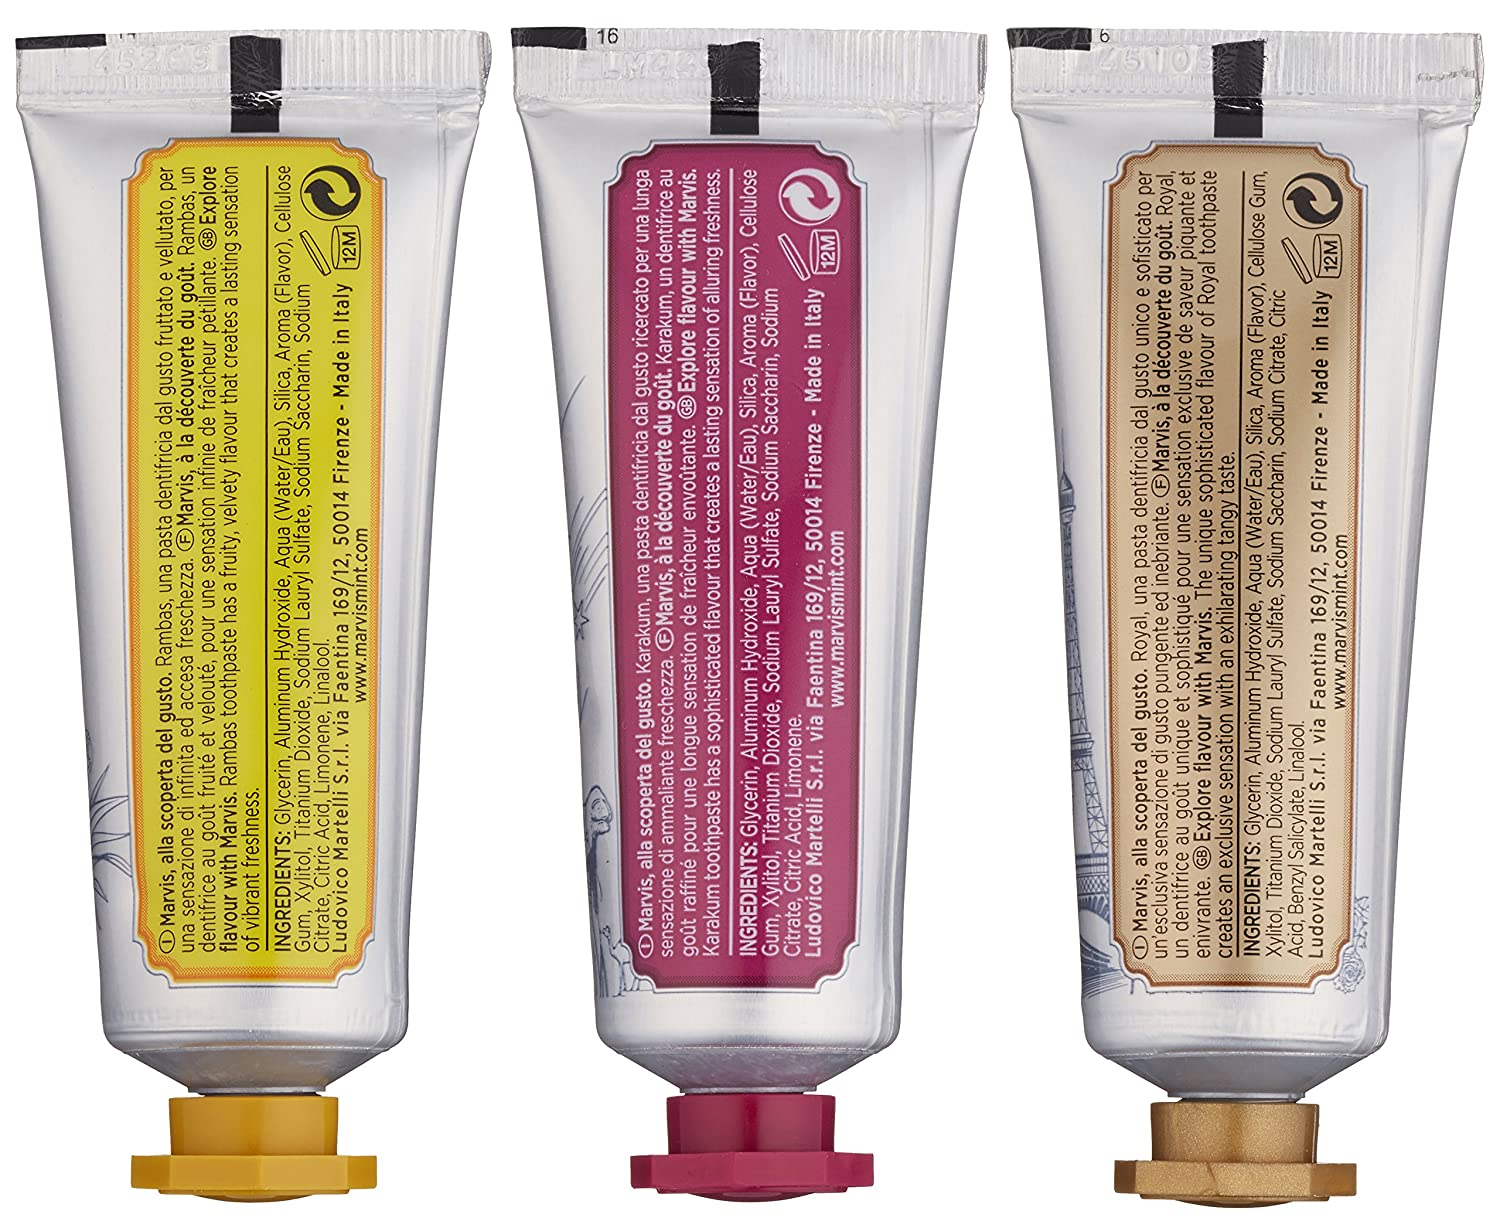 Amazon.com: Marvis Wonders Of The World Toothpaste Set, Limited ...